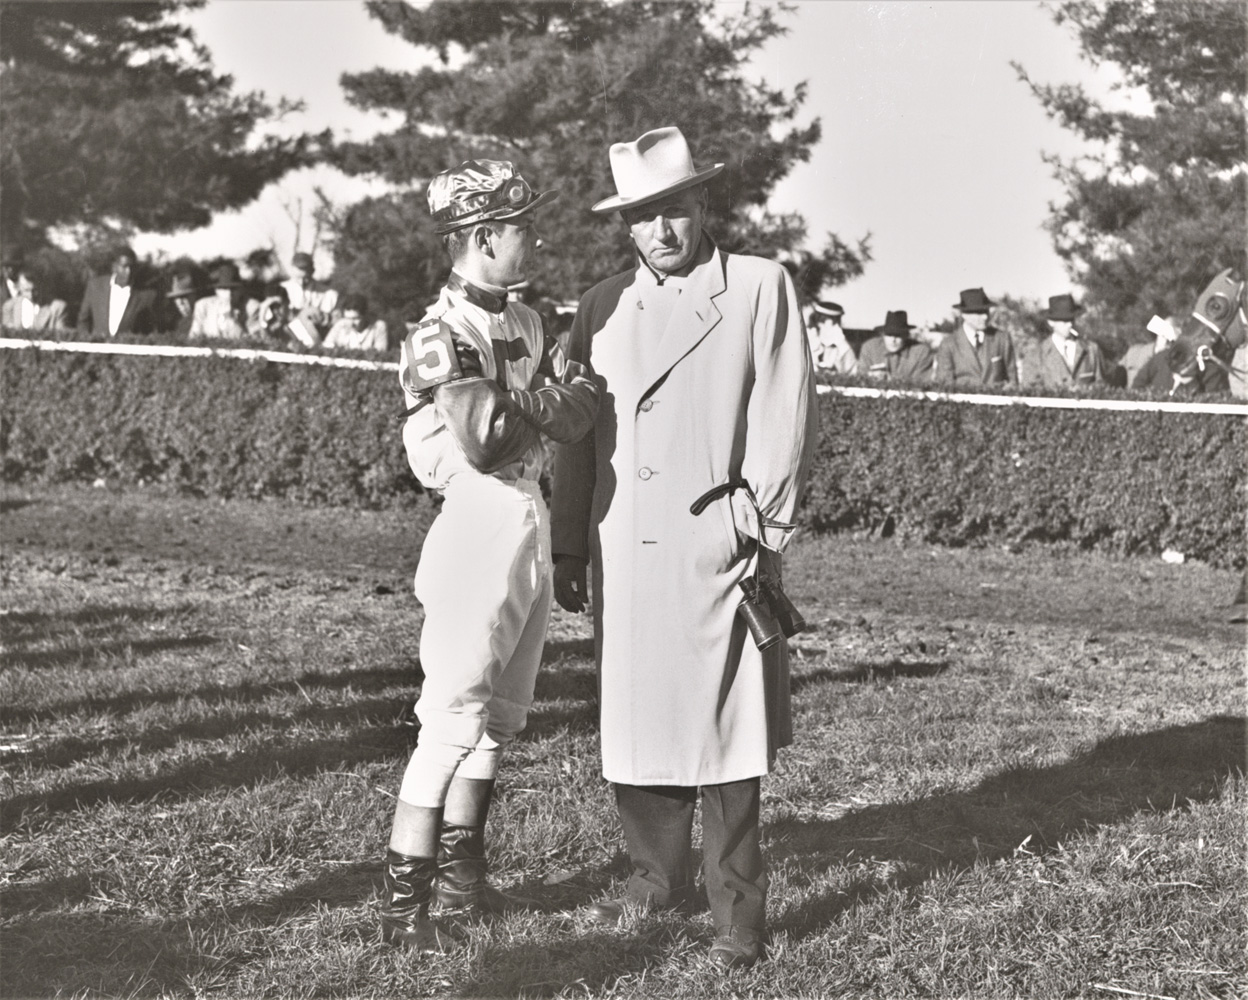 L. Risley and Henry Forrest in the paddock at Keeneland, April 1954 (Keeneland Association)